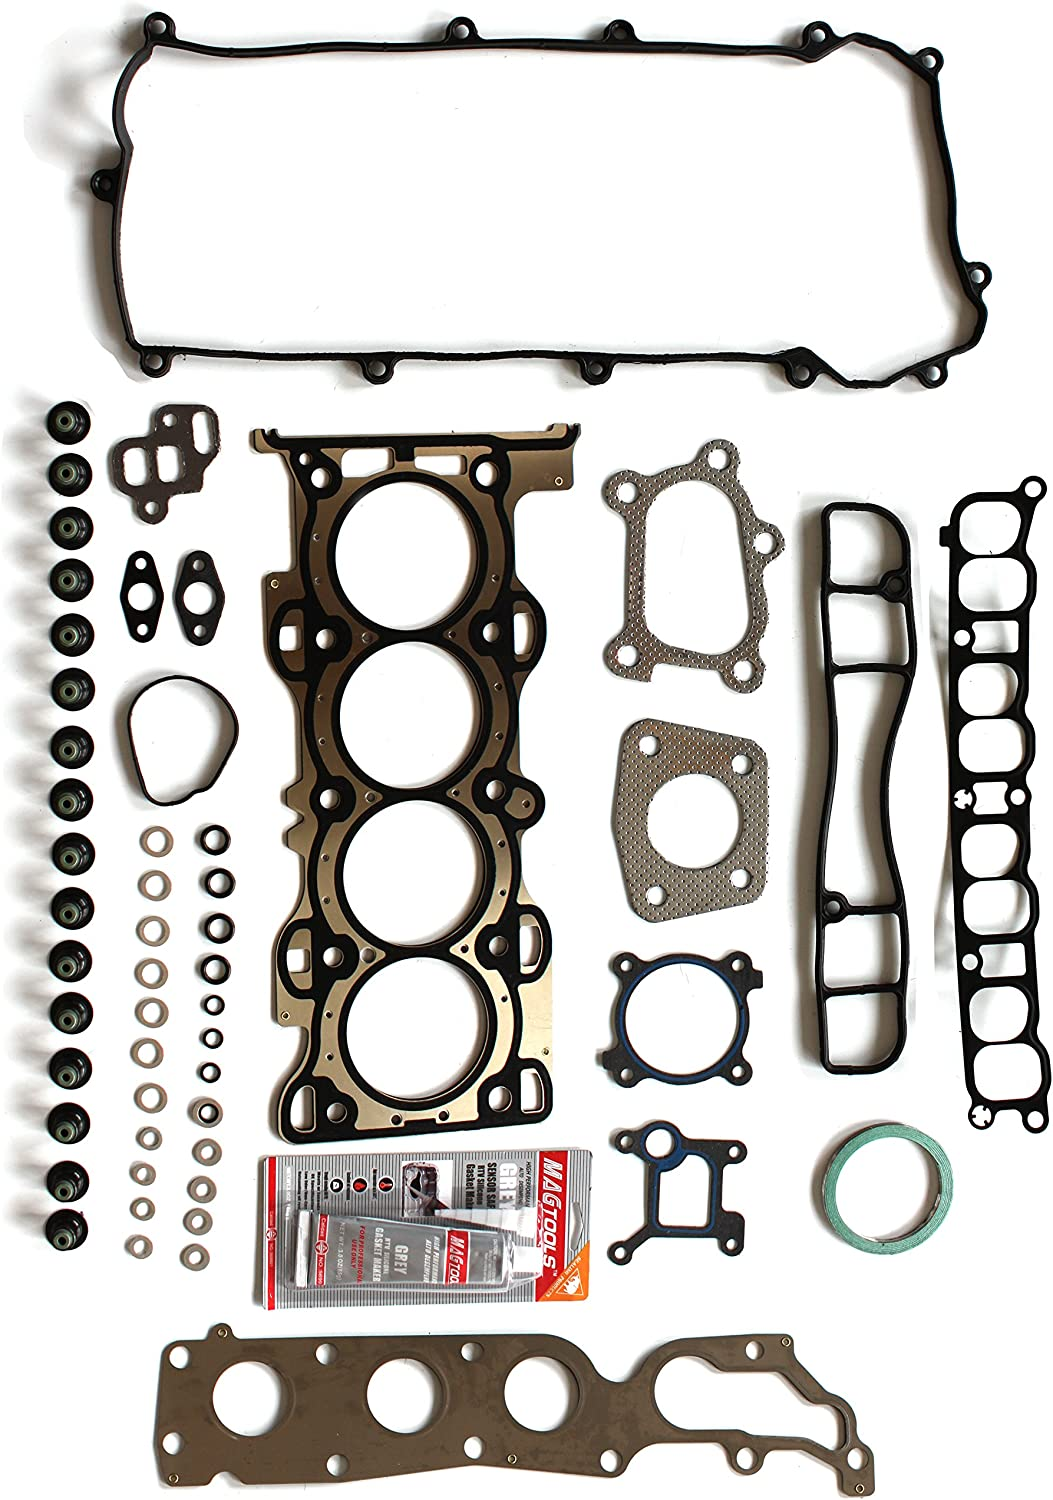 New Head Gasket Set for Mazda 3 2006-2013